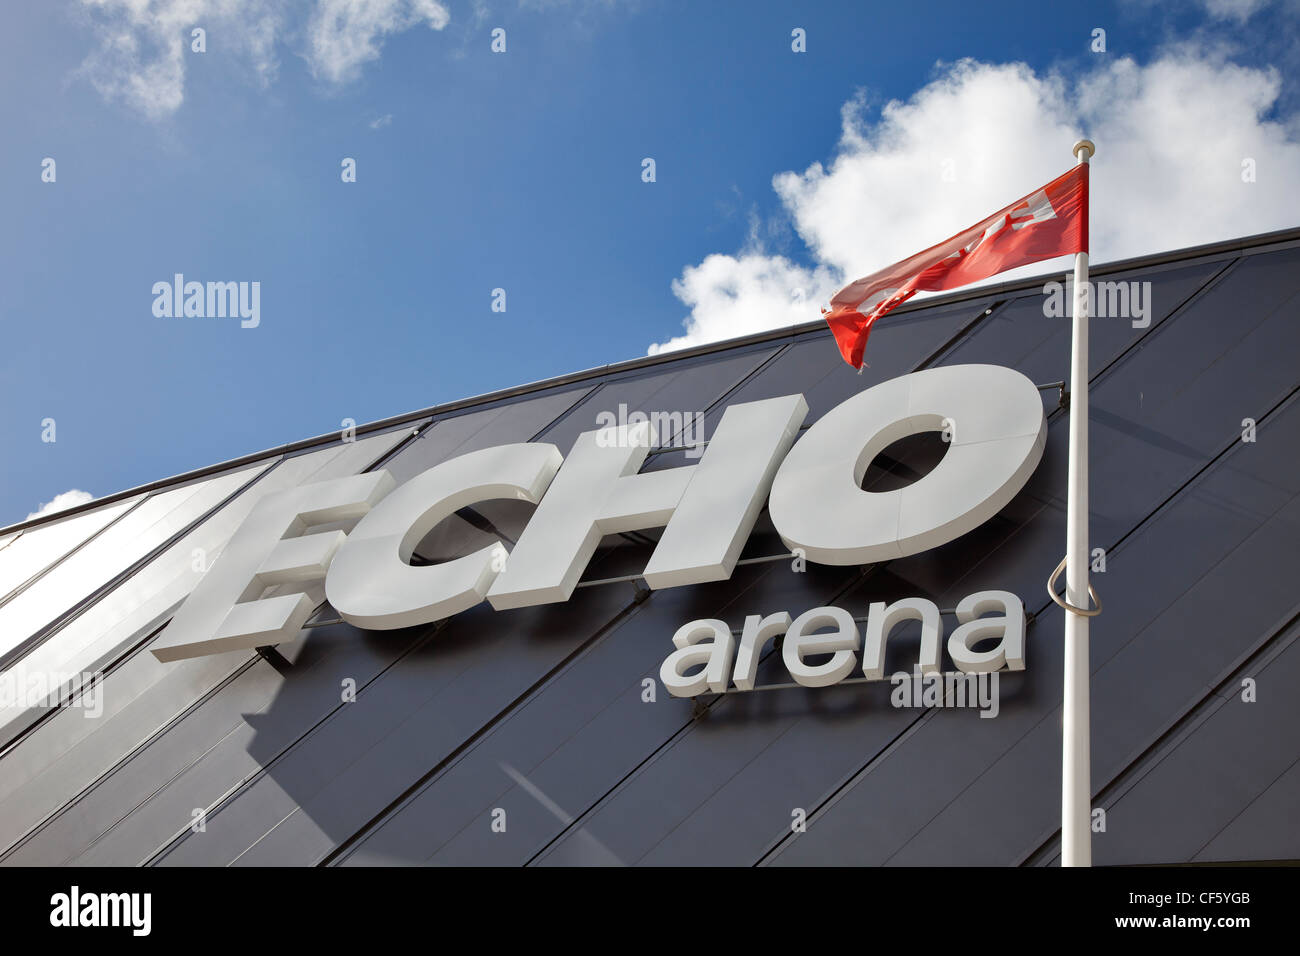 The Echo Arena, an 11,000 capacity venue on the eastern bank of the river Mersey, in the heart of Liverpool city - Stock Image